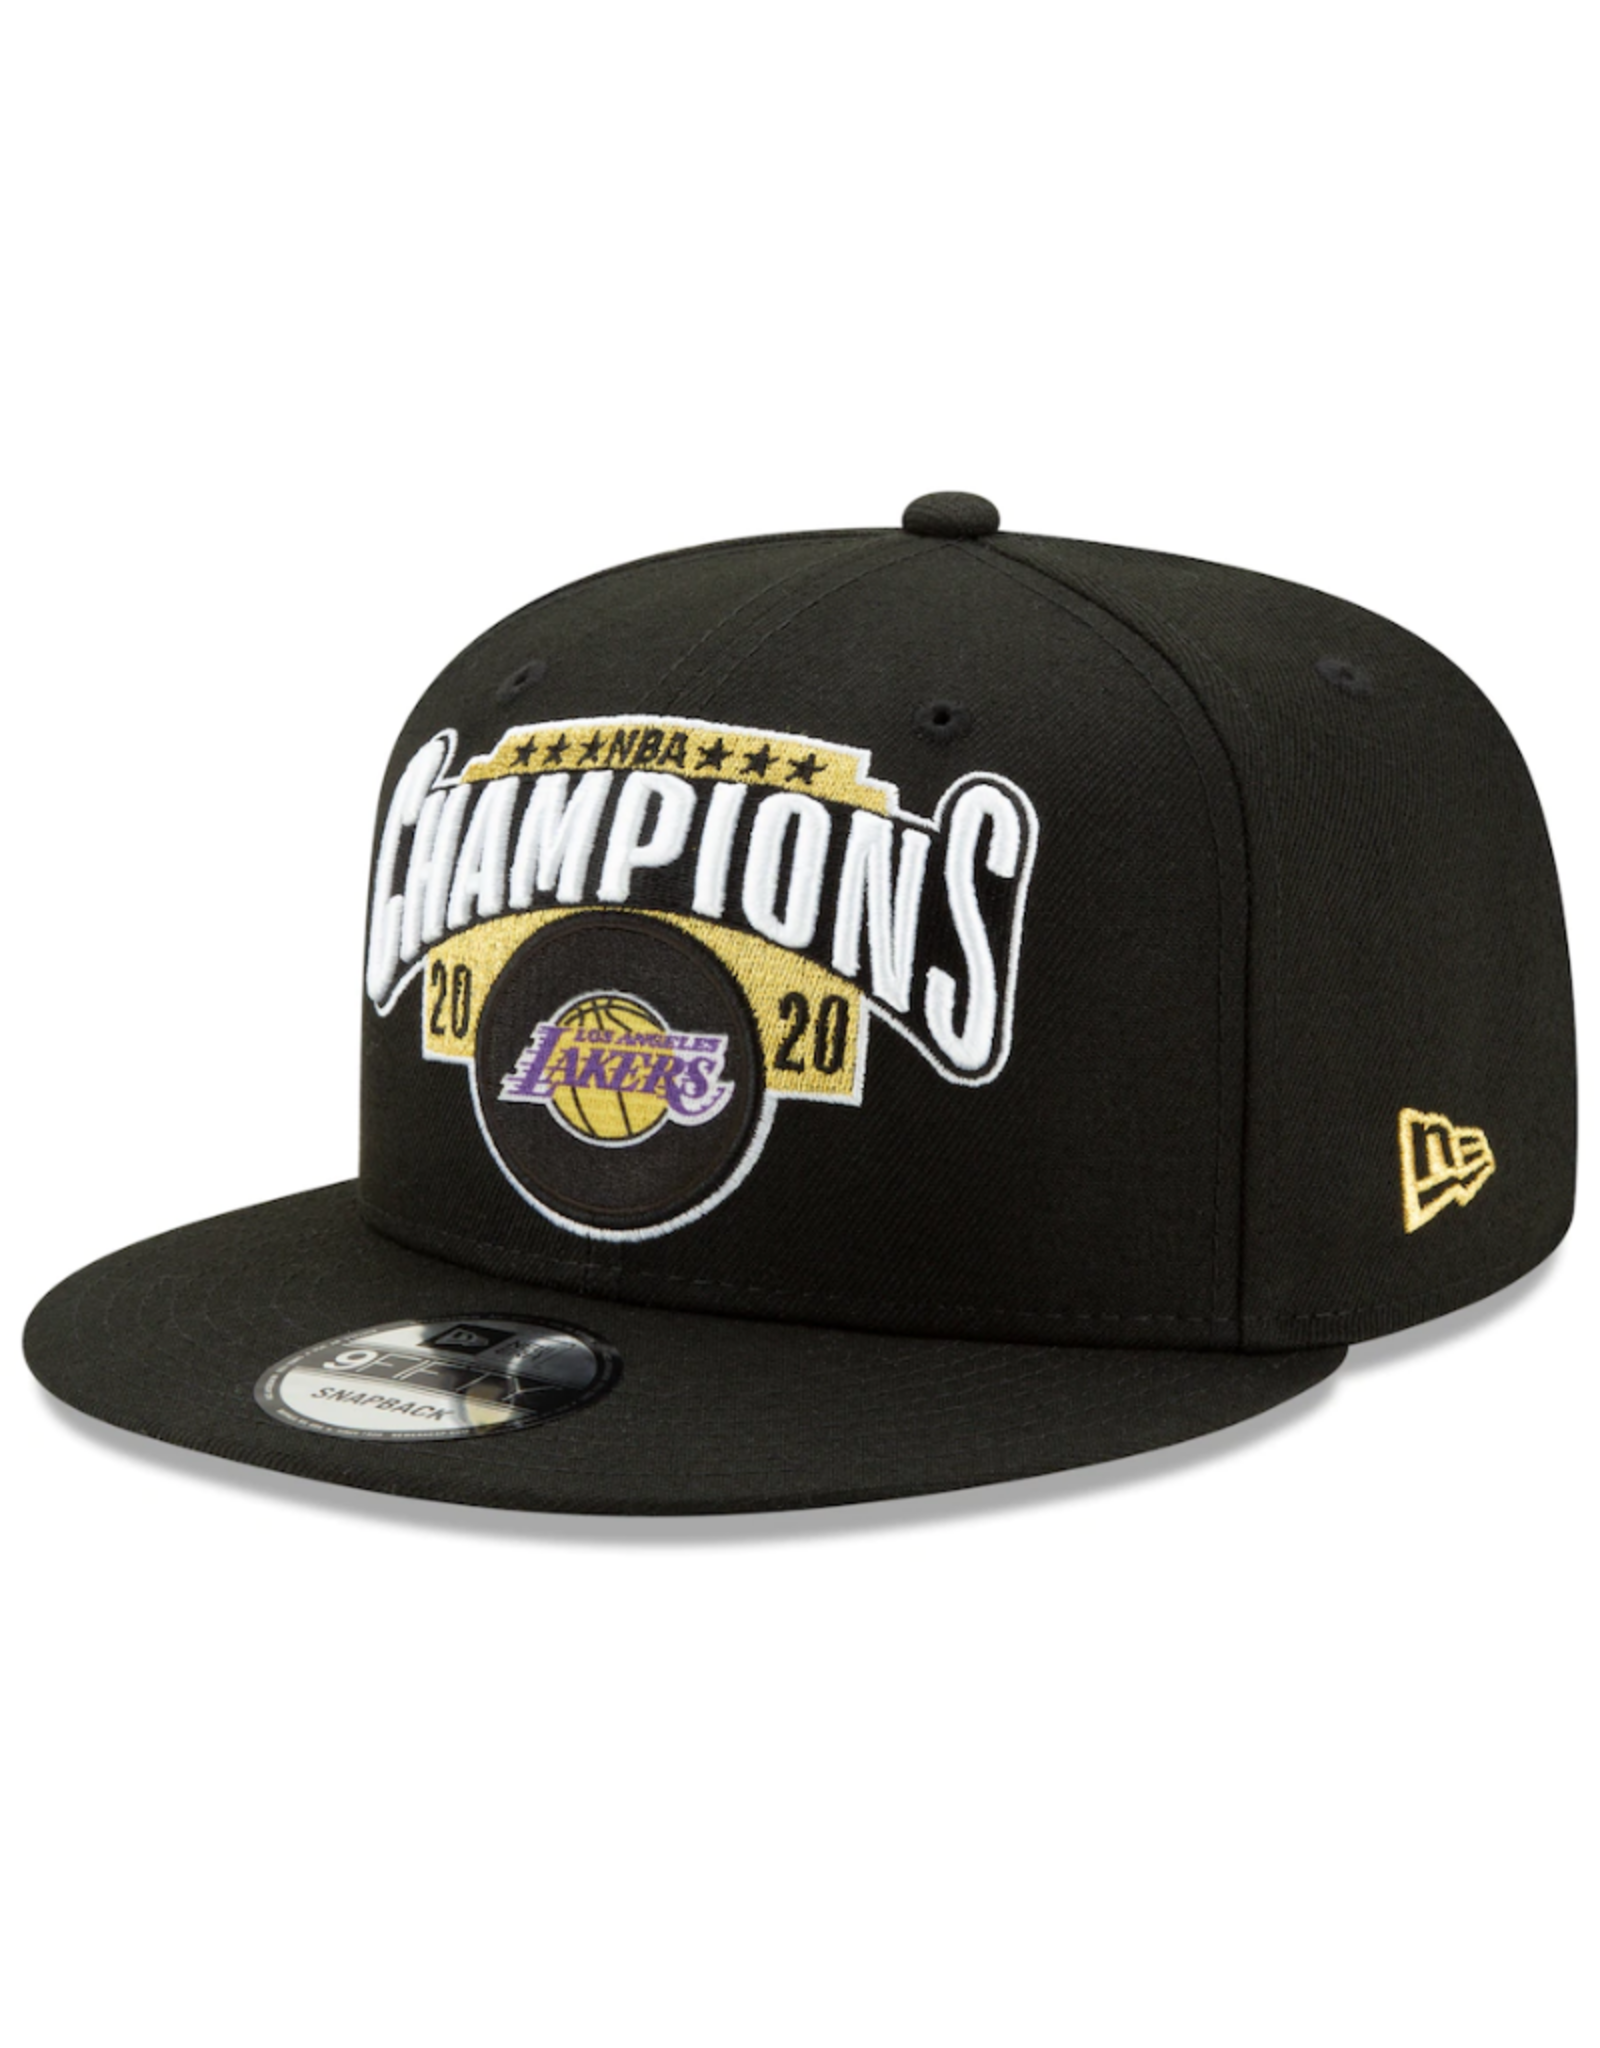 New Era Adult NBA '20 Championship Locker Room 9FIFTY Hat Los Angeles Lakers